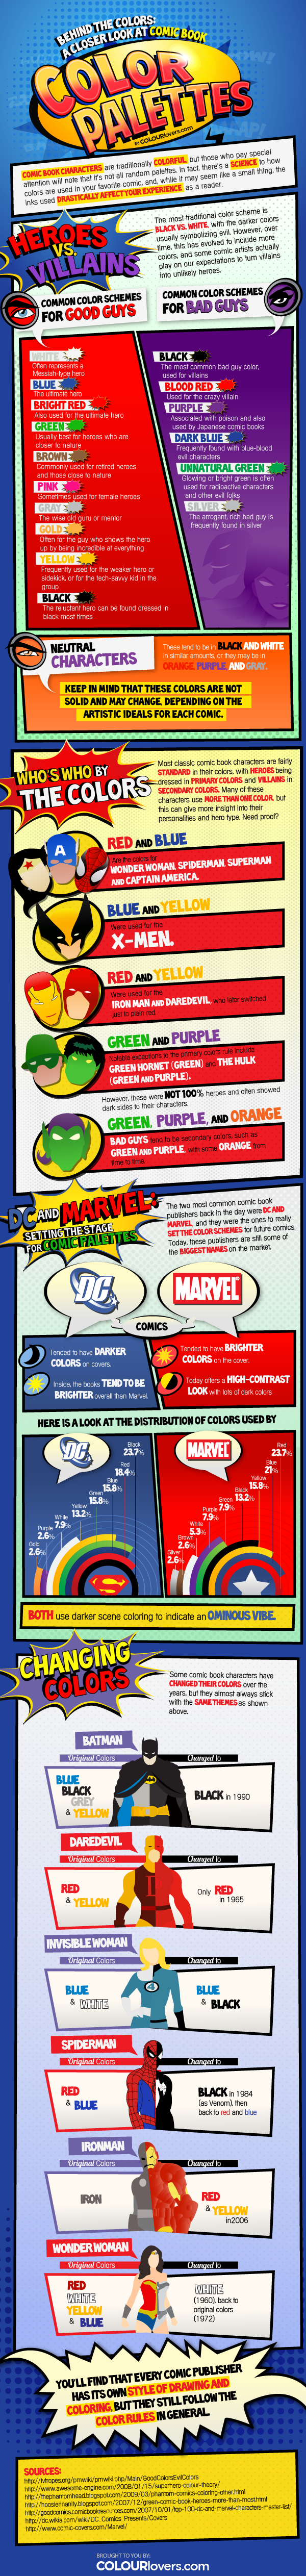 The Superhero Colors of Good vs. Evil (INFOGRAPHIC) от Veggie за 27 nov 2012